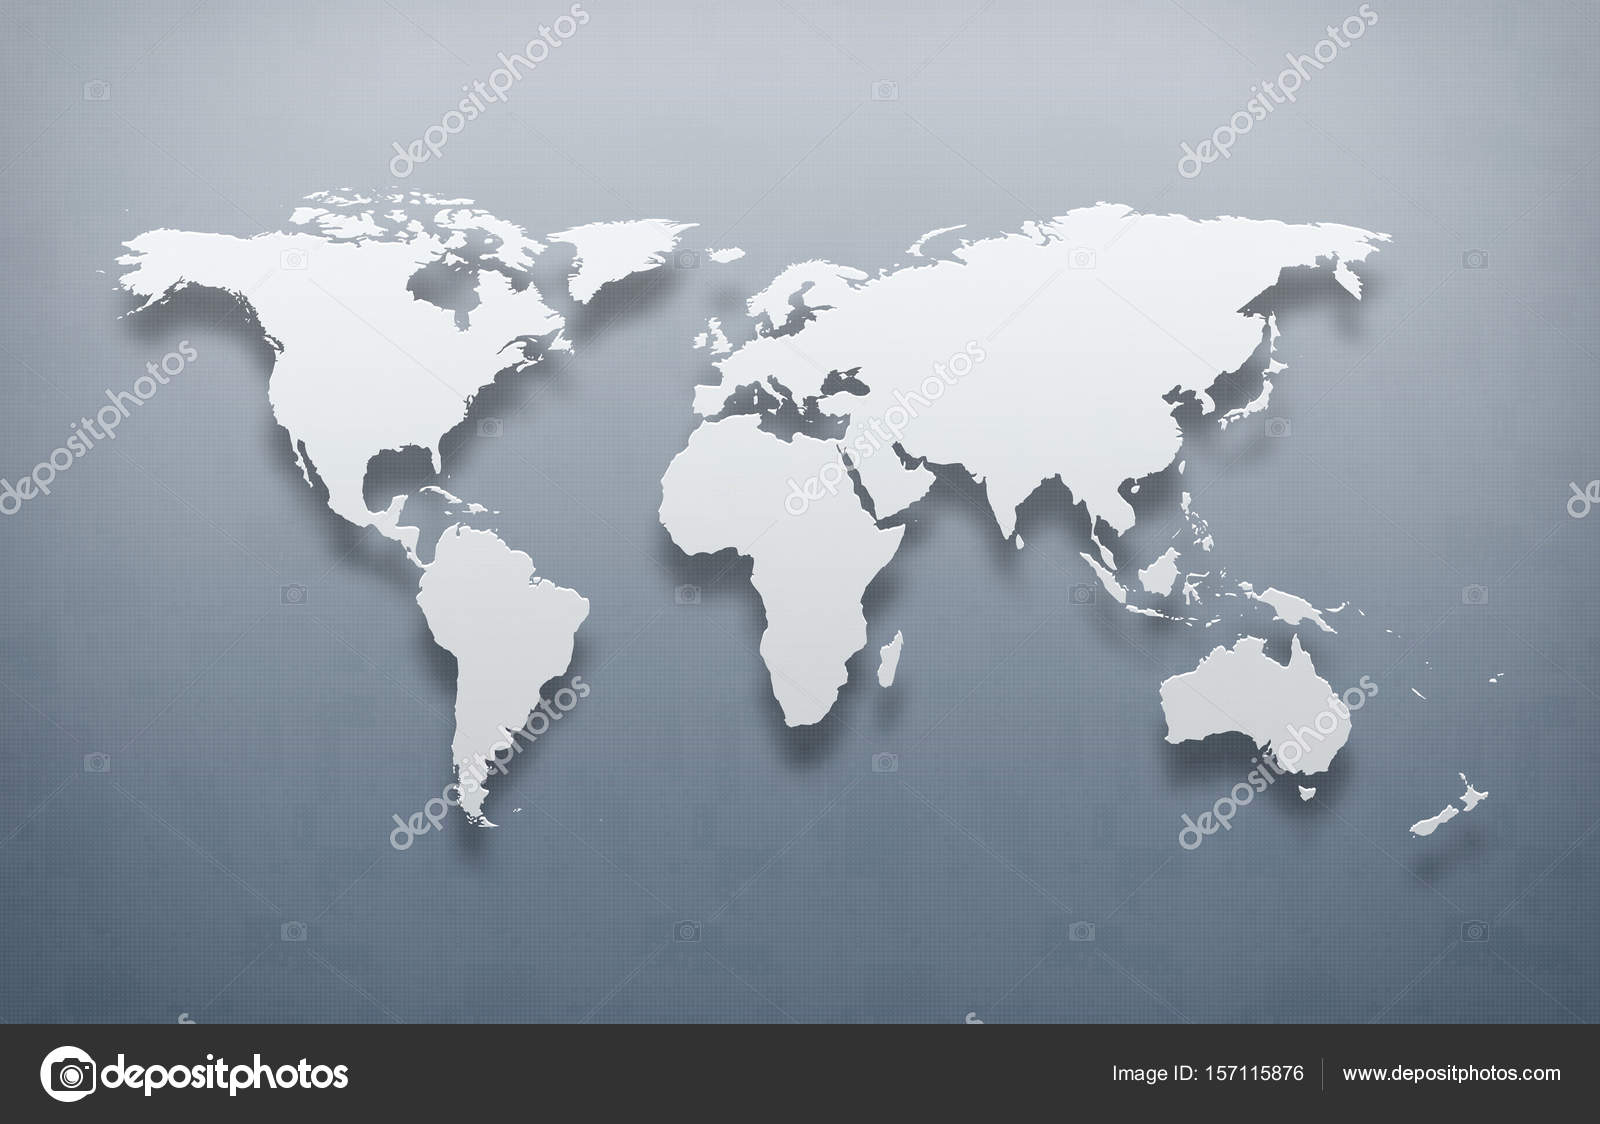 World map digital world map high tech map futuristic stock digital world map with vintage effect high resolution photo by designworkz gumiabroncs Gallery